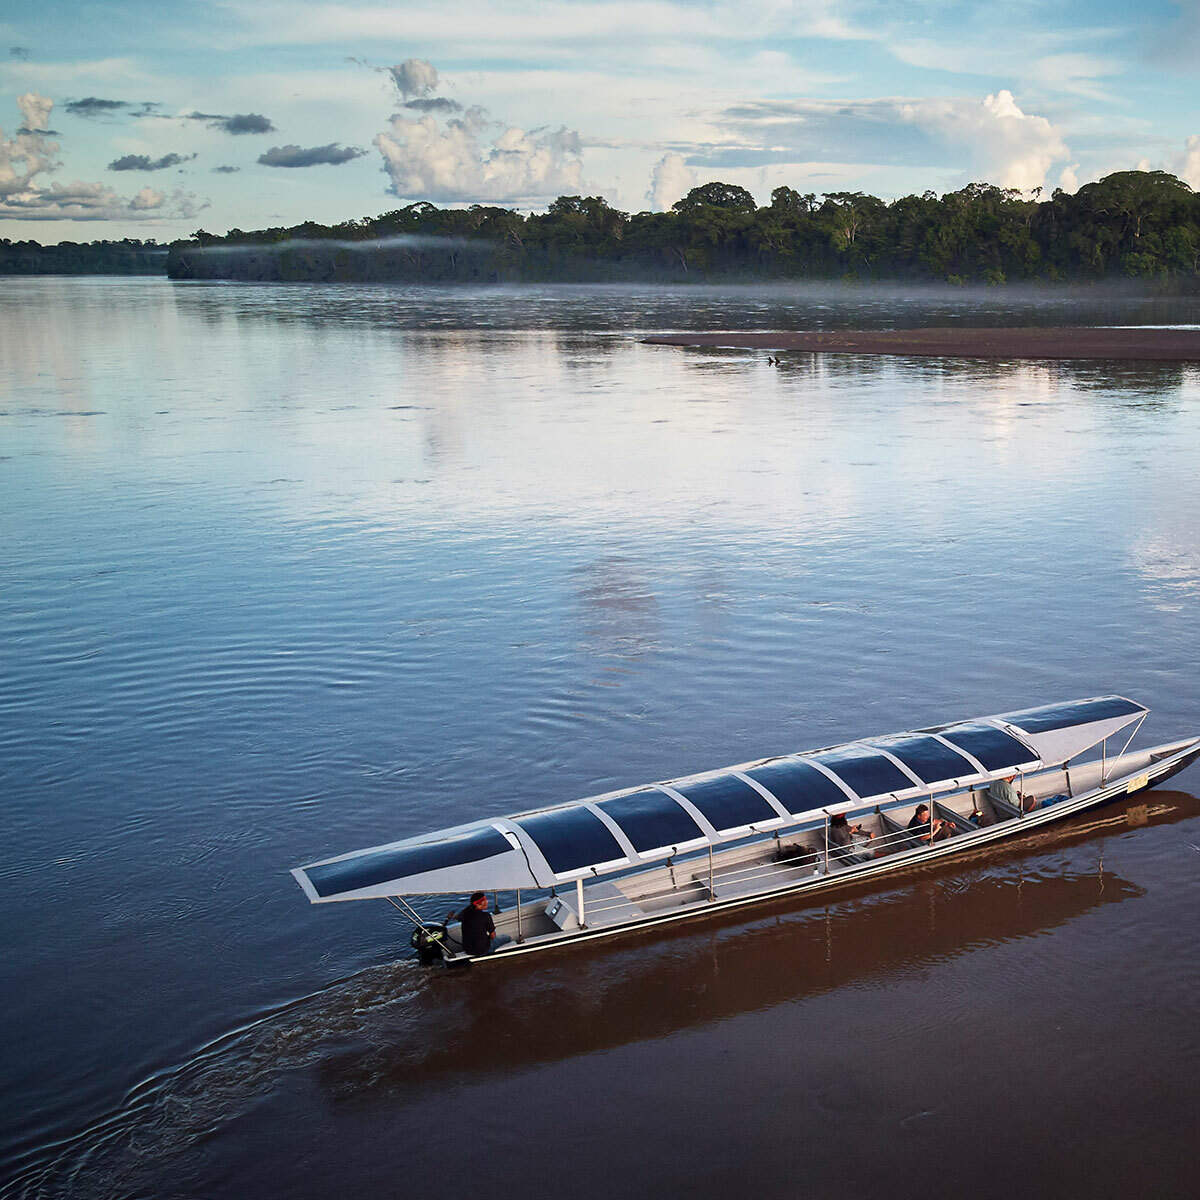 Solar powered boat on water